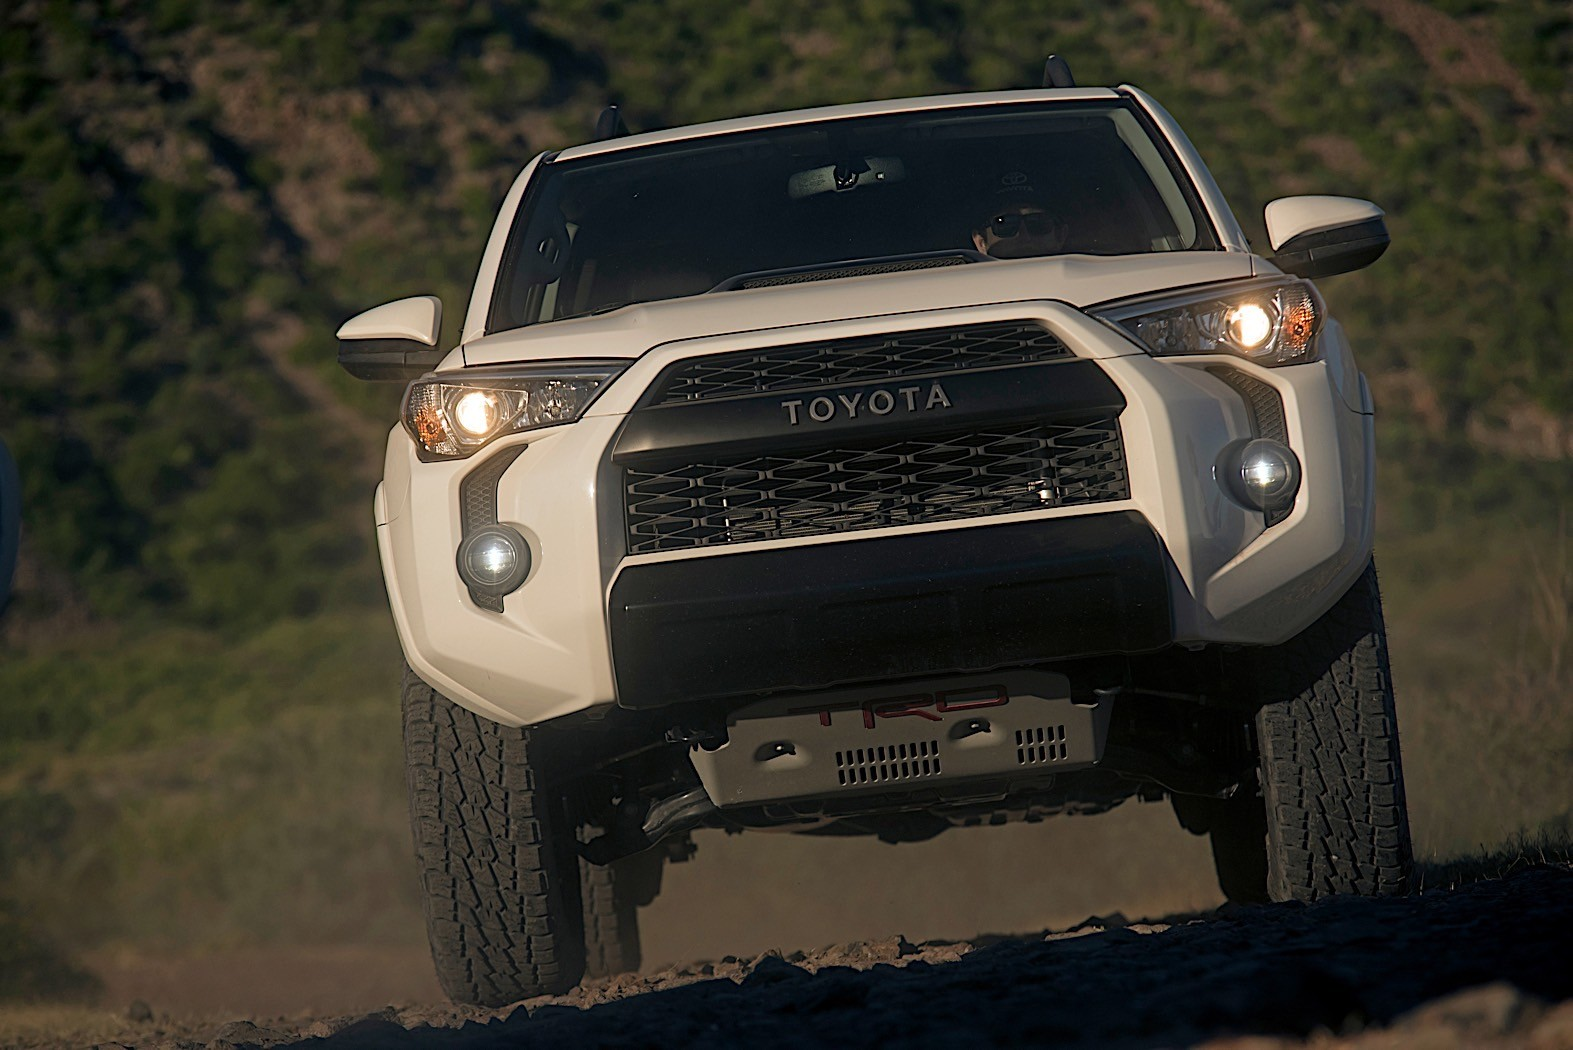 Toyota Tundra TRD, 4Runner TRD, Tacoma TRD Pro just got meaner